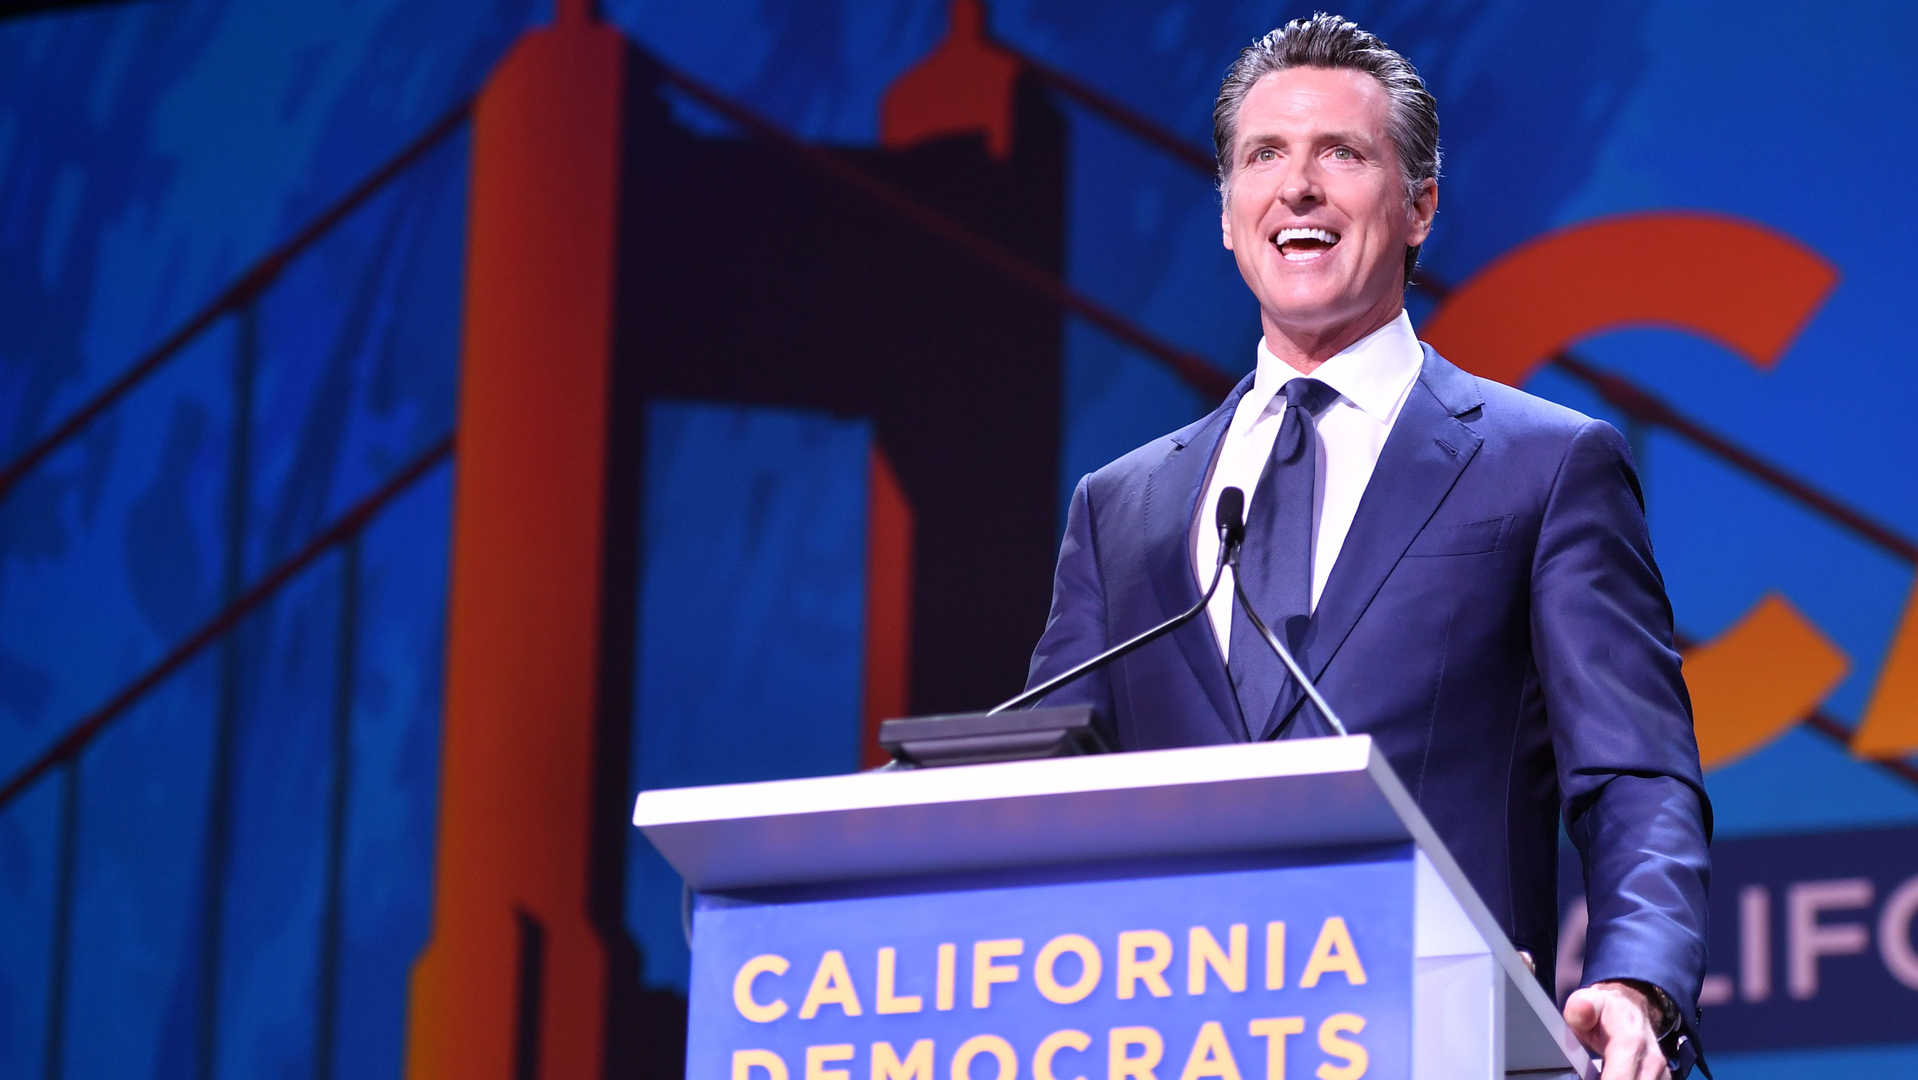 Gov. Gavin Newsom speaks during the 2019 California Democratic Party State Convention at Moscone Center in San Francisco on June 1, 2019. (Credit: JOSH EDELSON/AFP/Getty Images)